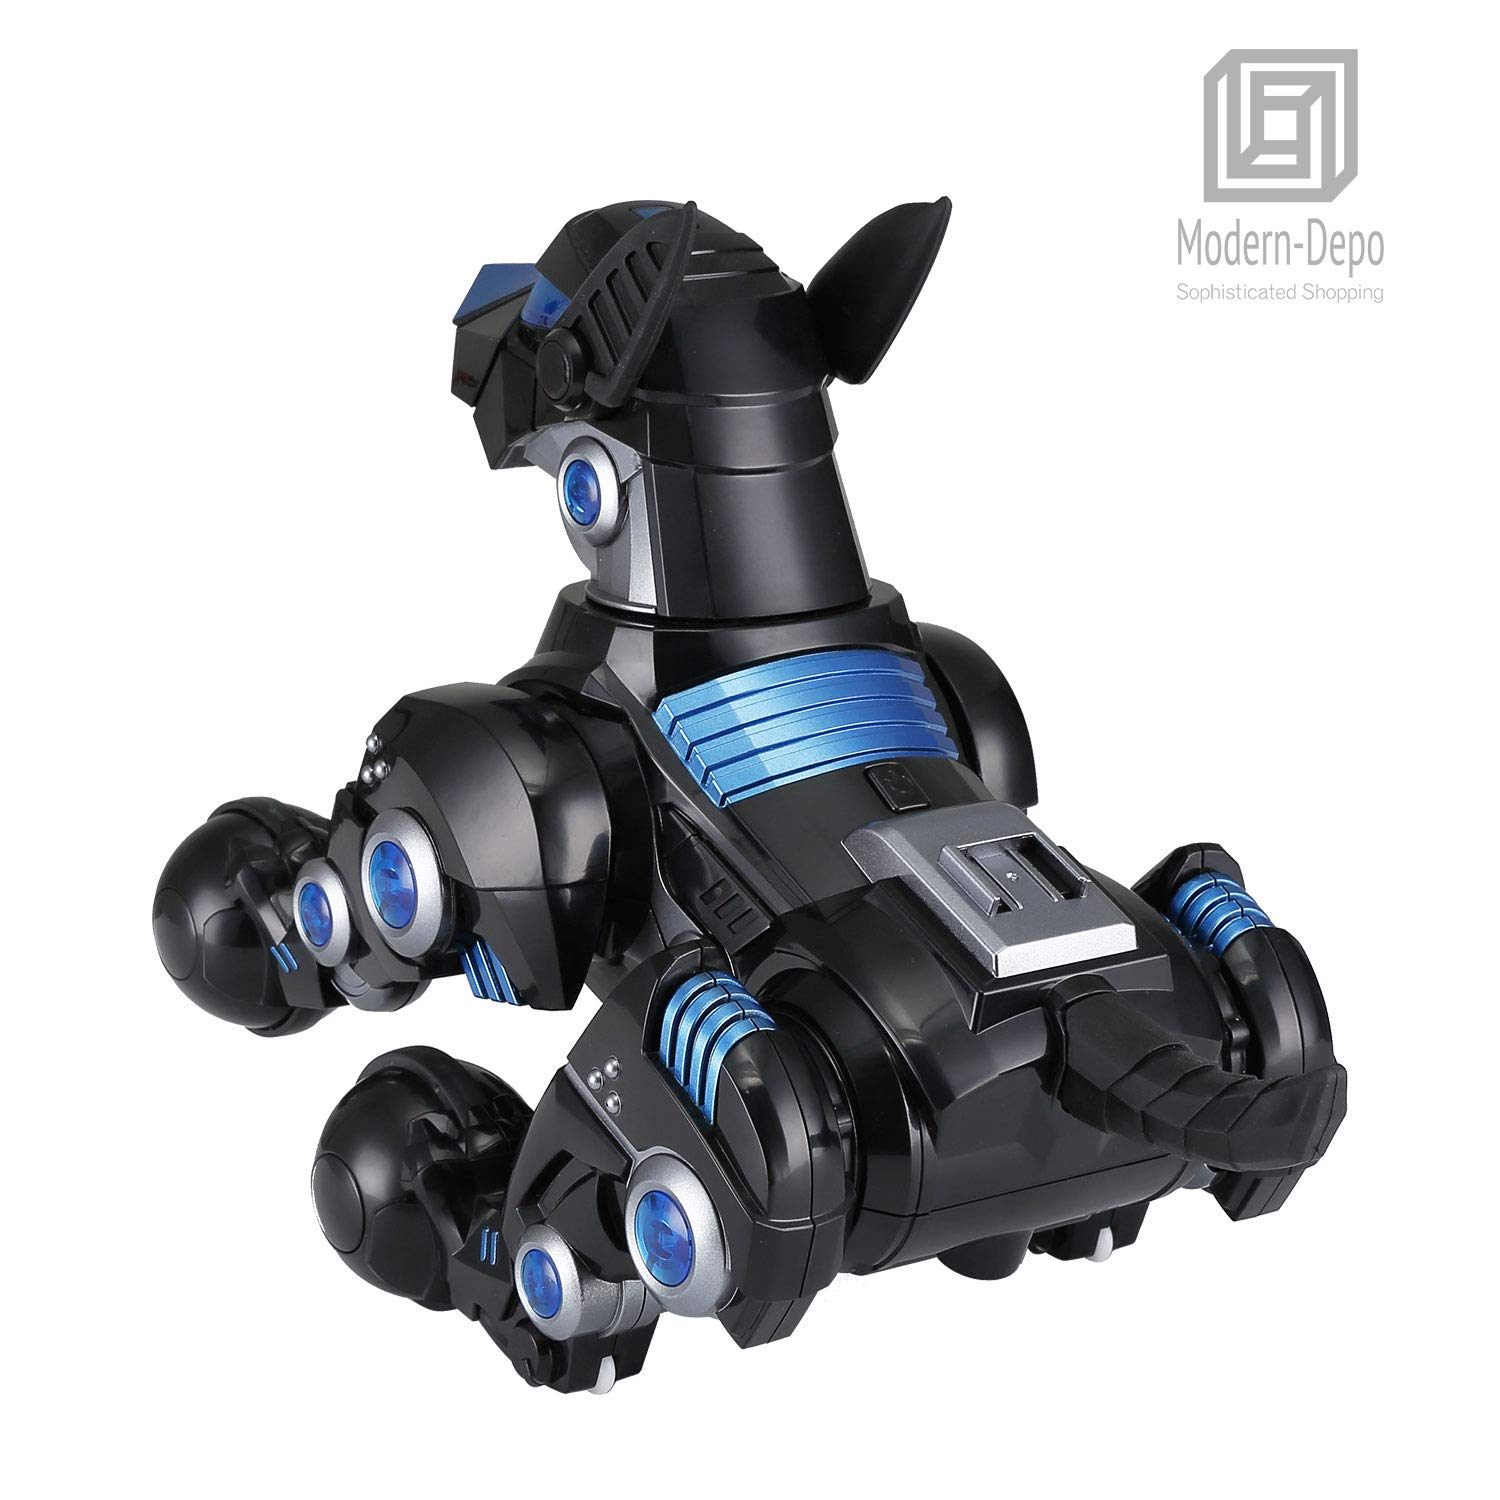 Modern-Depo Rastar Intelligent Robot Dog with Remote Control for Kids, USB Charging, Dancing Demo - Black by Modern-Depo (Image #6)